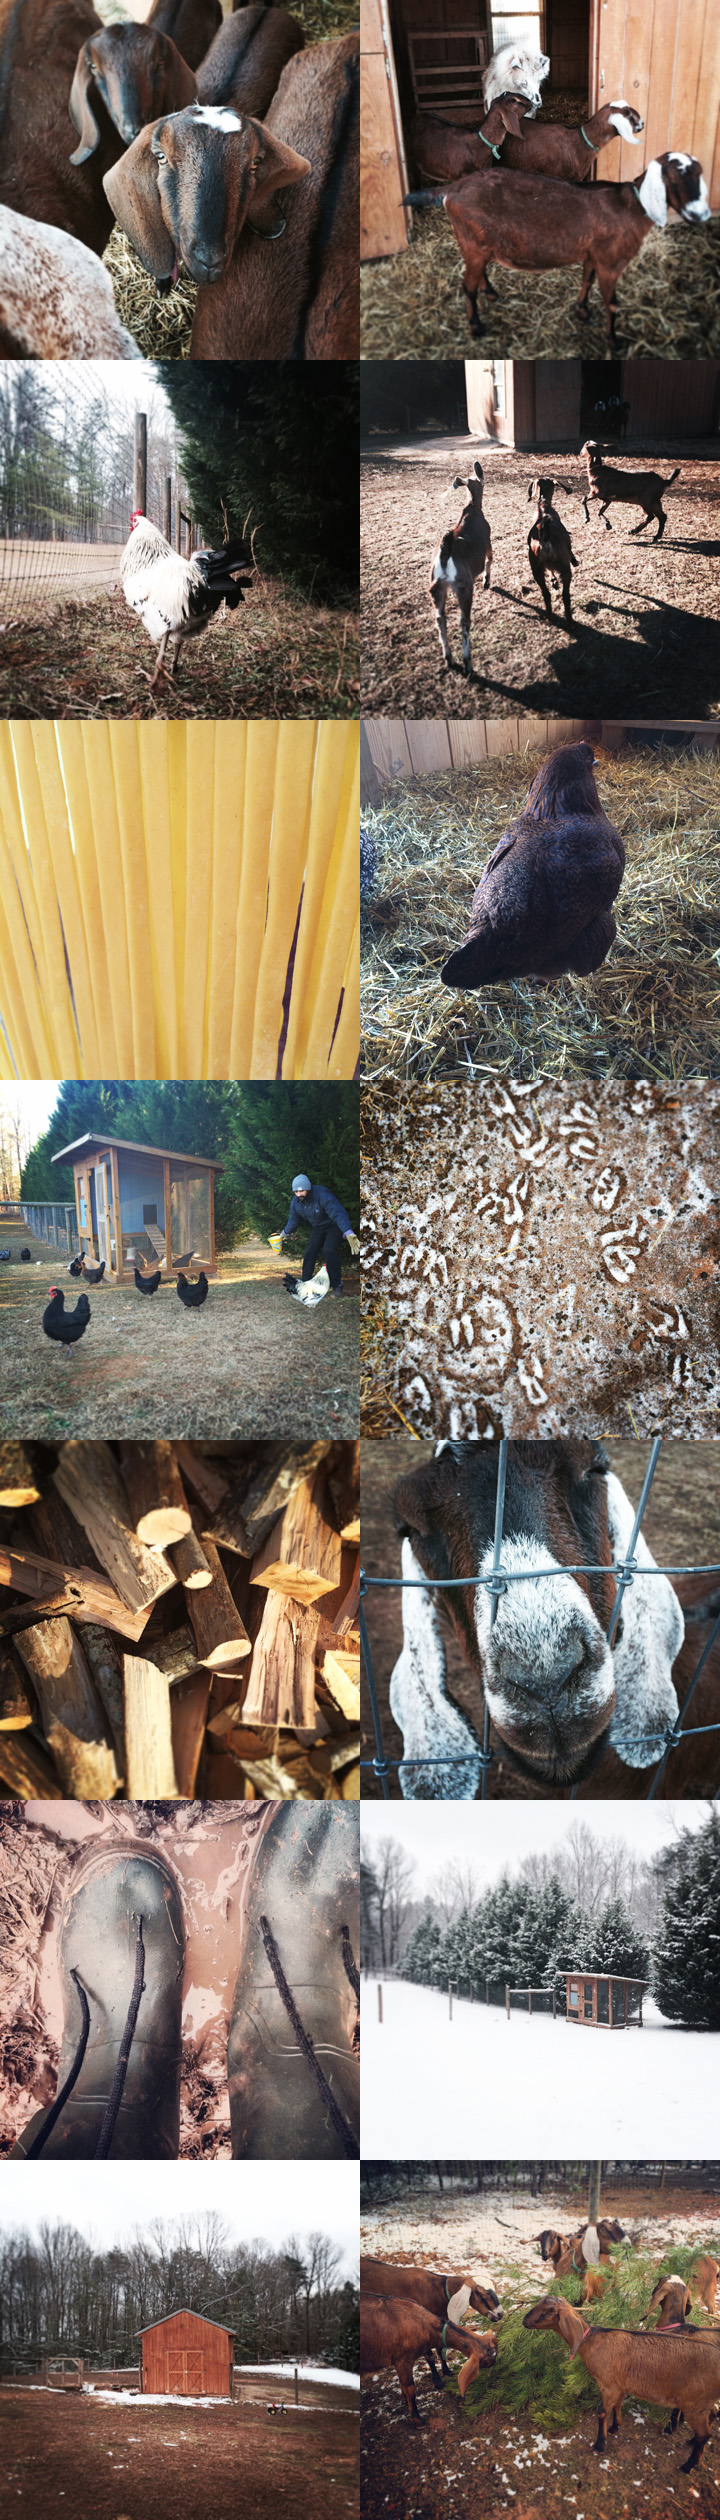 Photos from The Freckled Farm